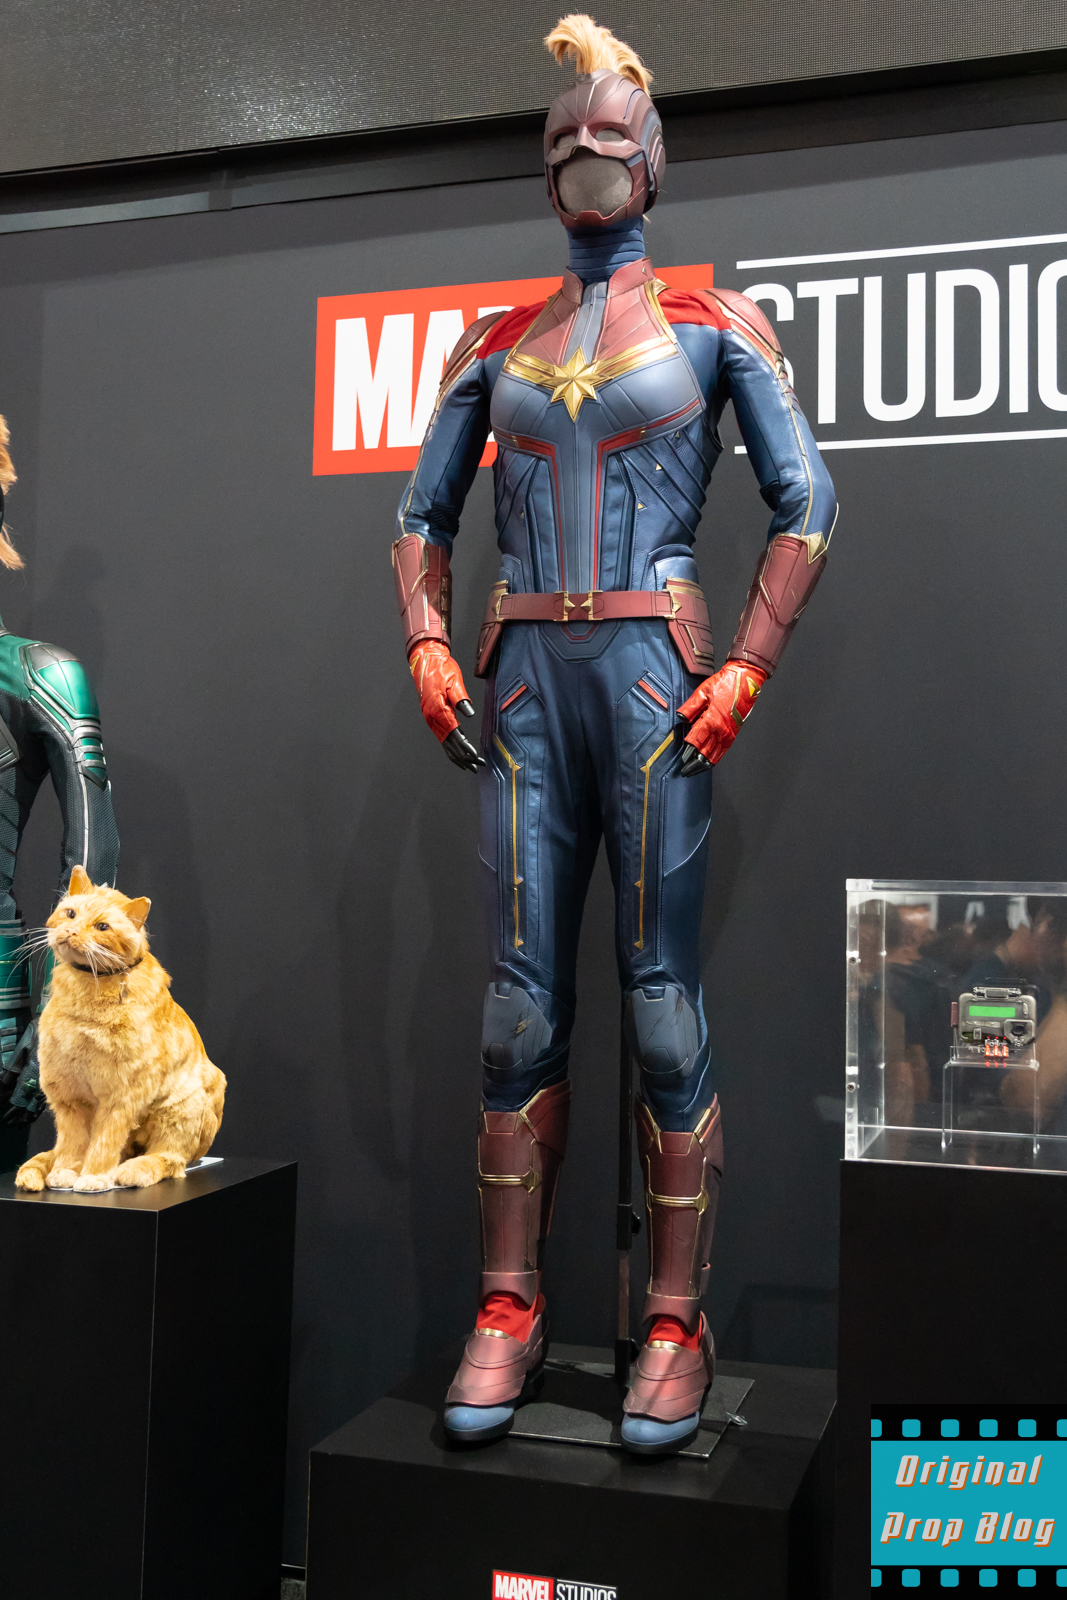 San Diego Comic Con 2019 Marvel Entertainment Part 1 Captain Marvel Costume Exhibit Wednesday Thursday Despite the several month delay, kelly sue deconnick's captain marvel will pick back up next month. san diego comic con 2019 marvel